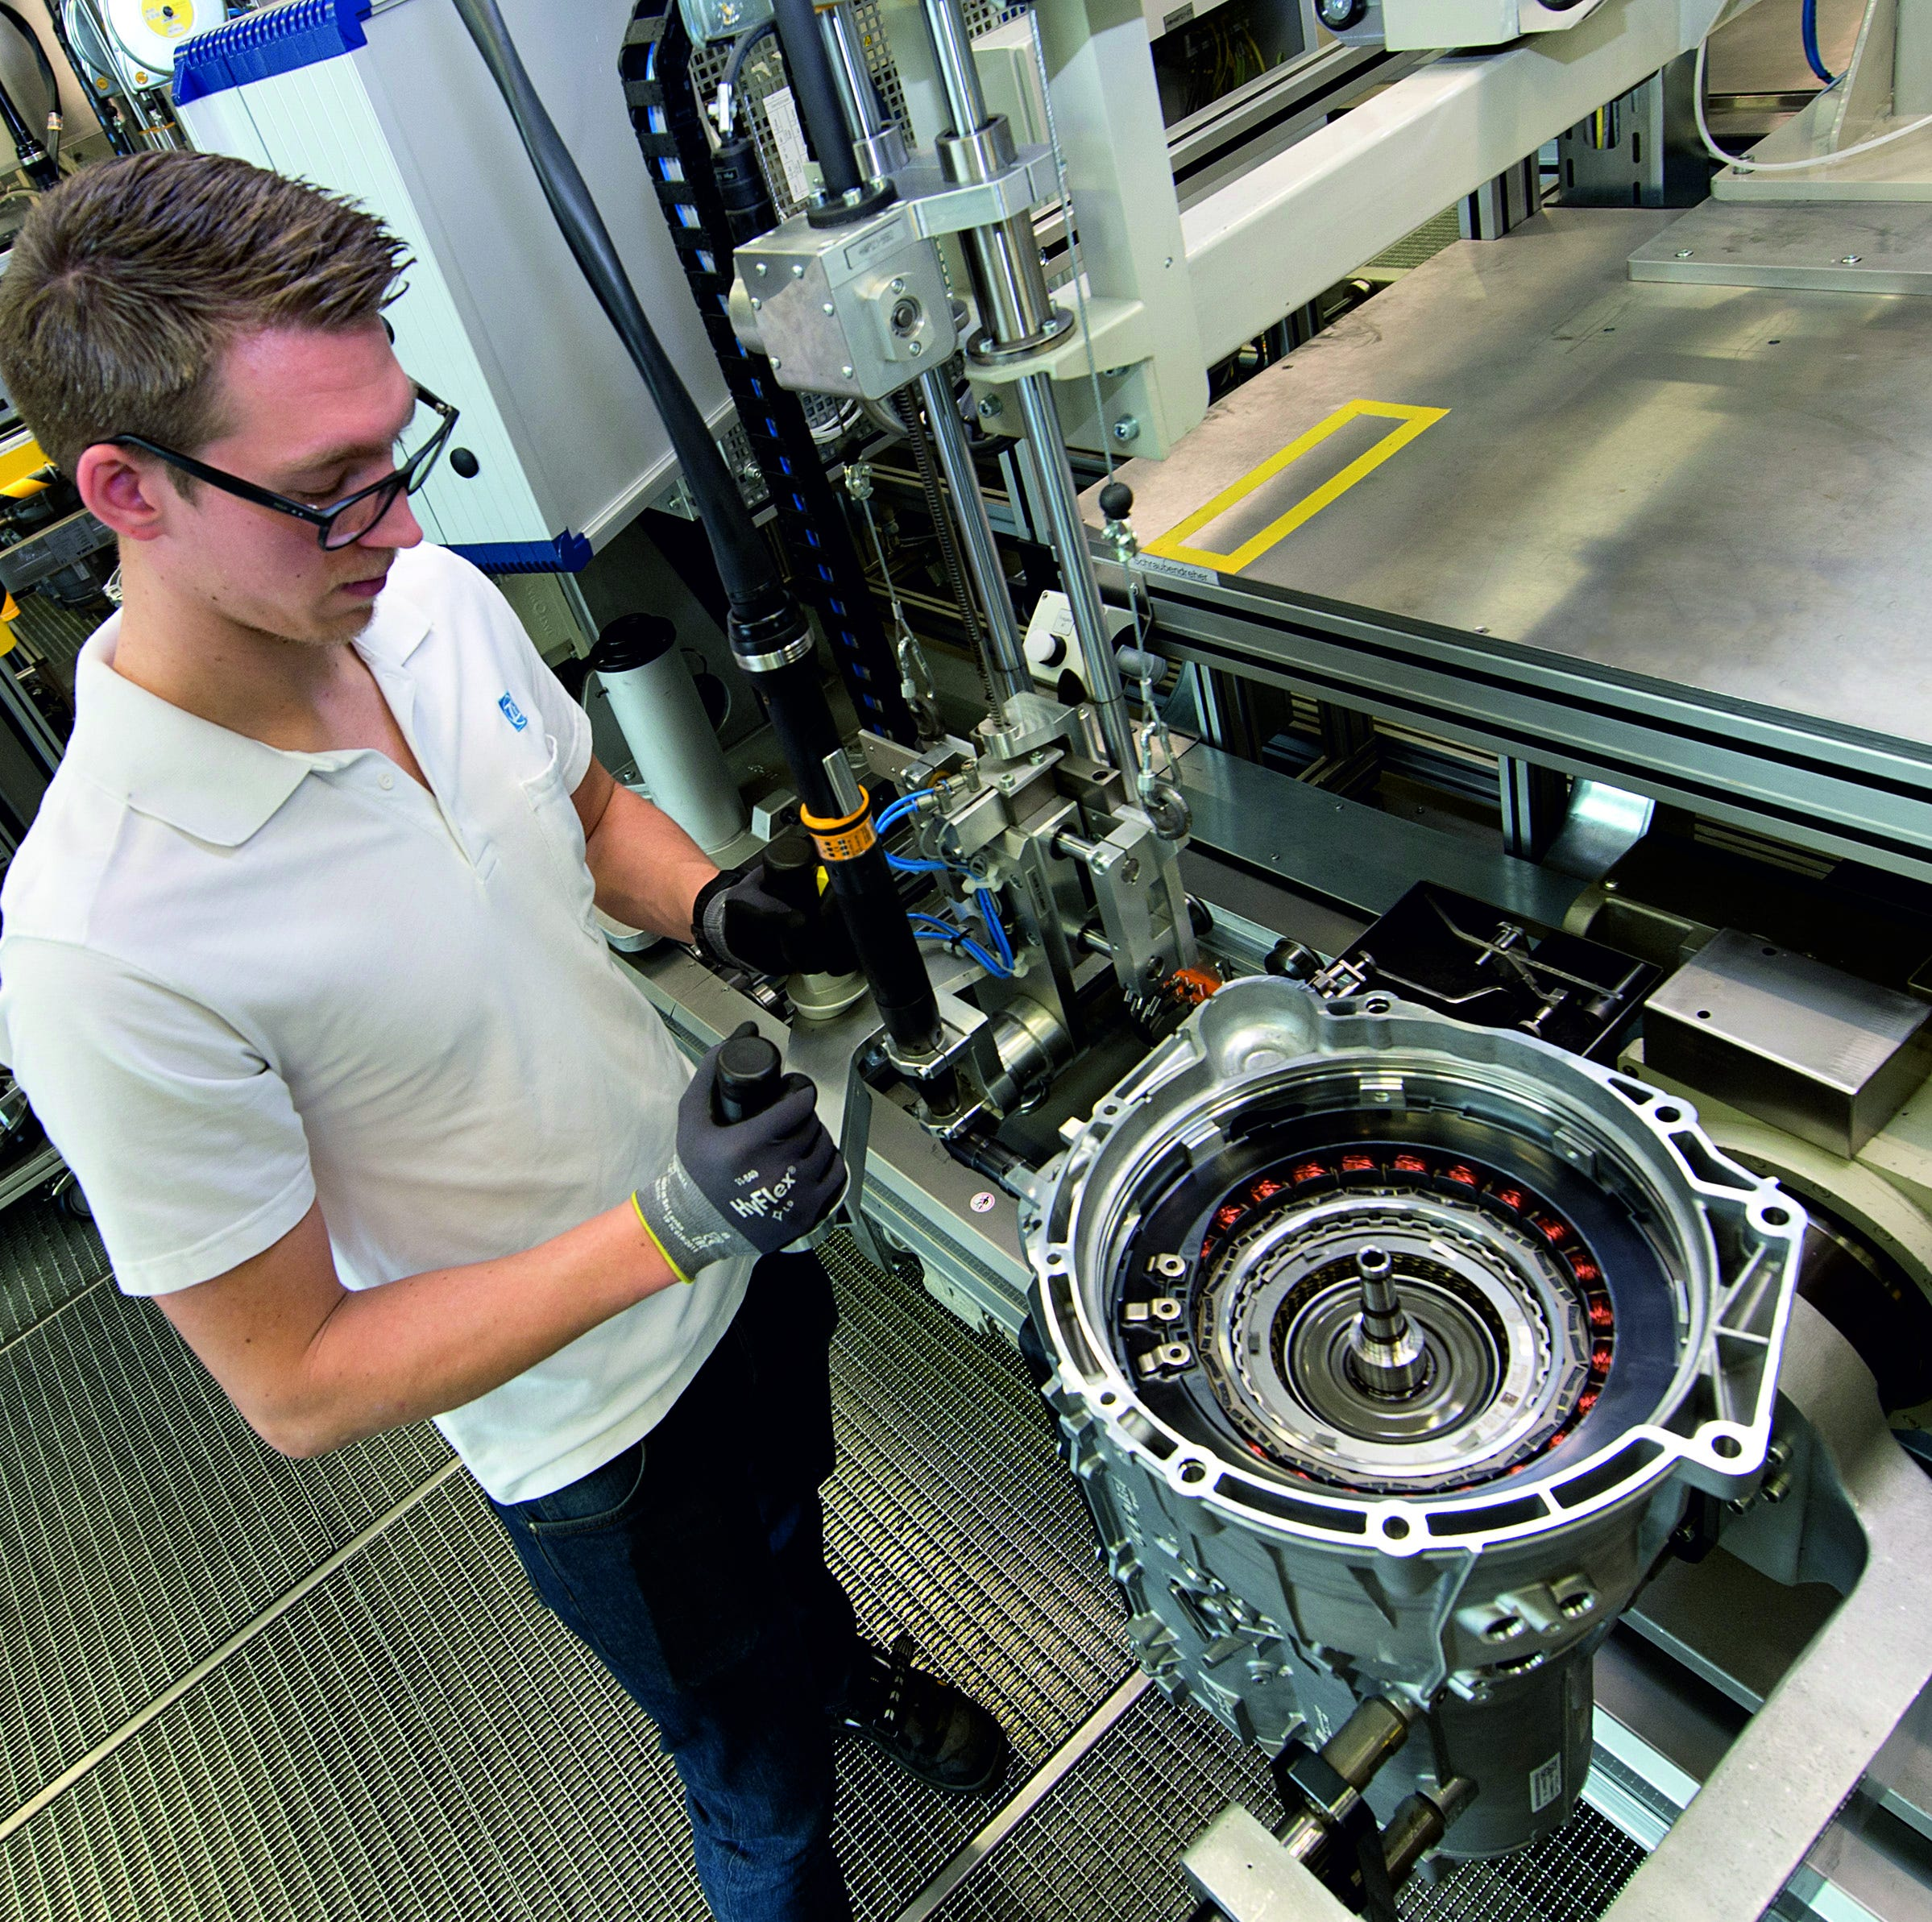 In new deal, ZF plant in Laurens will supply transmissions to Spartanburg BMW plant